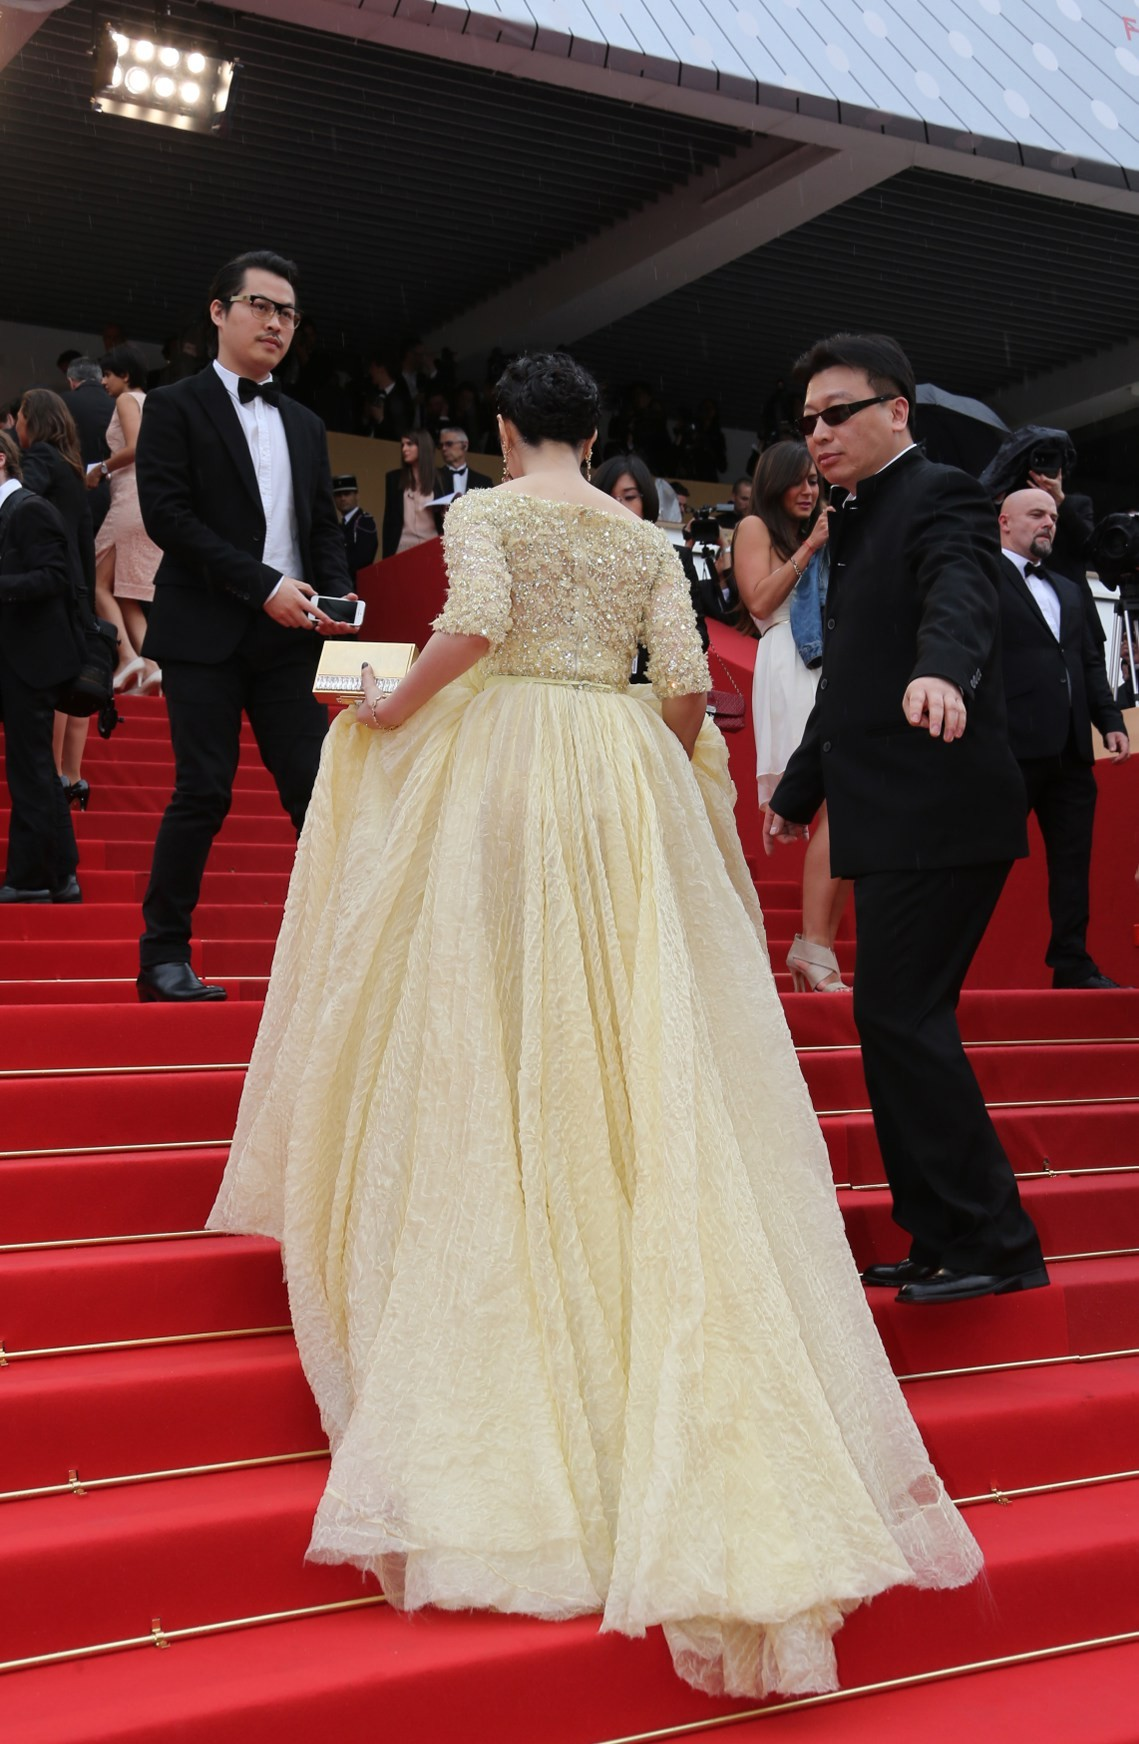 Fan Bing Bing at the Cannes Film Festival, May 16th